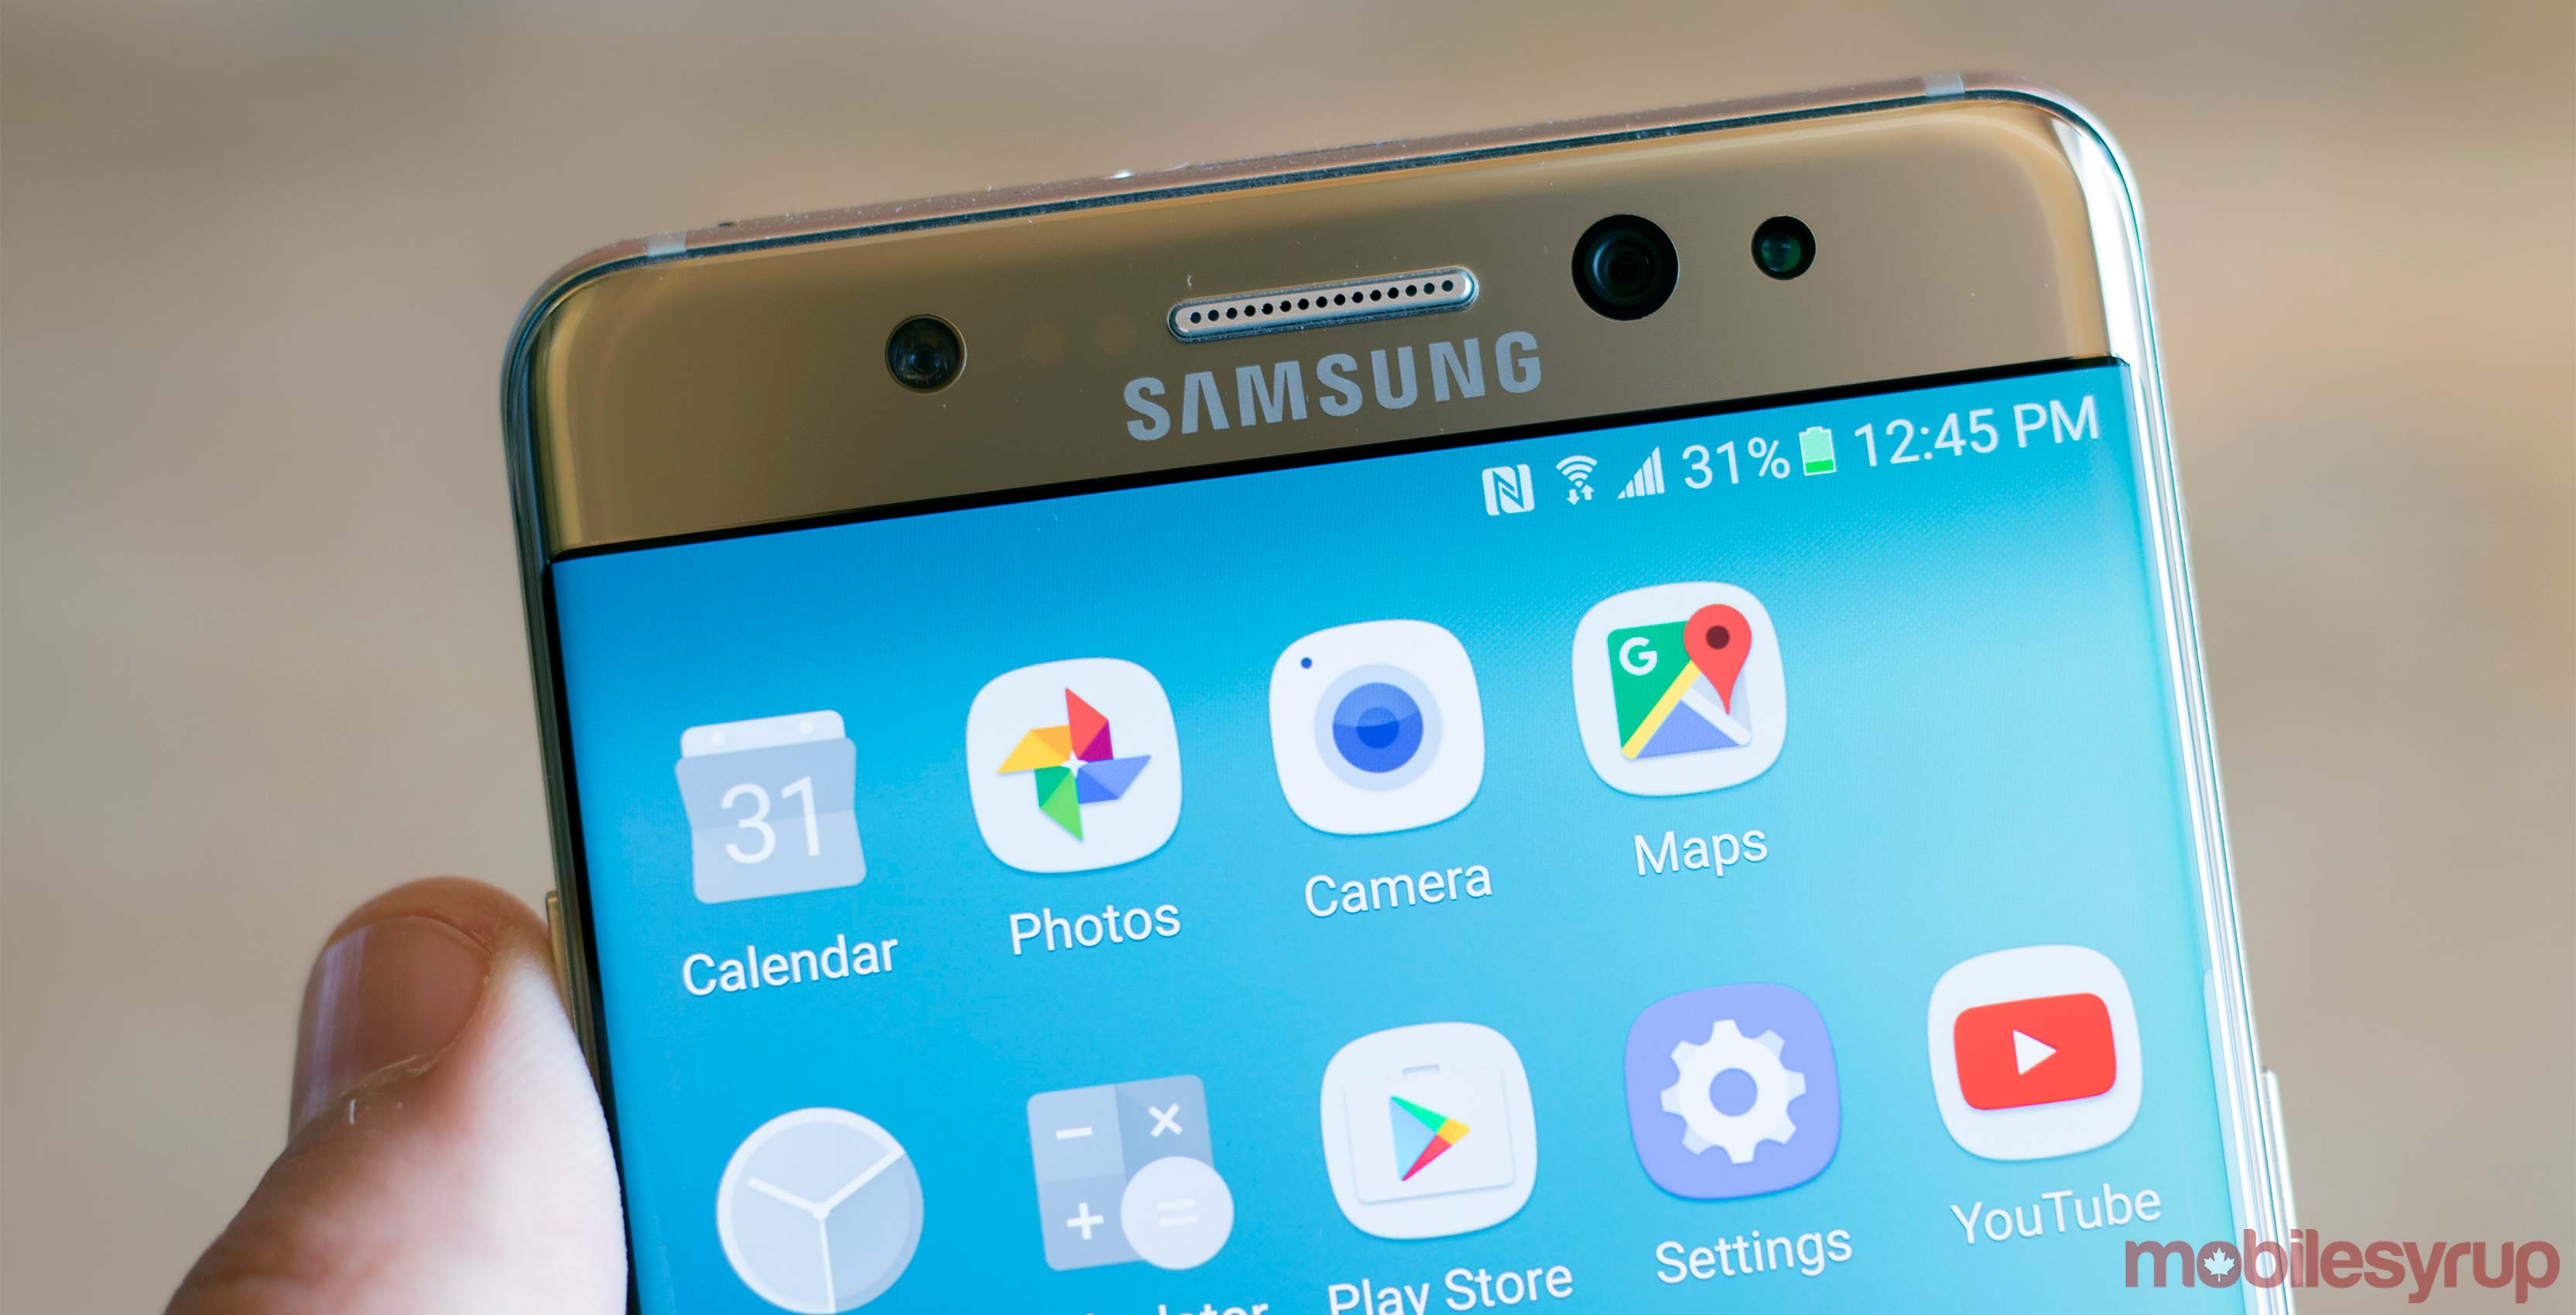 samsung galaxynote 8 code name is great